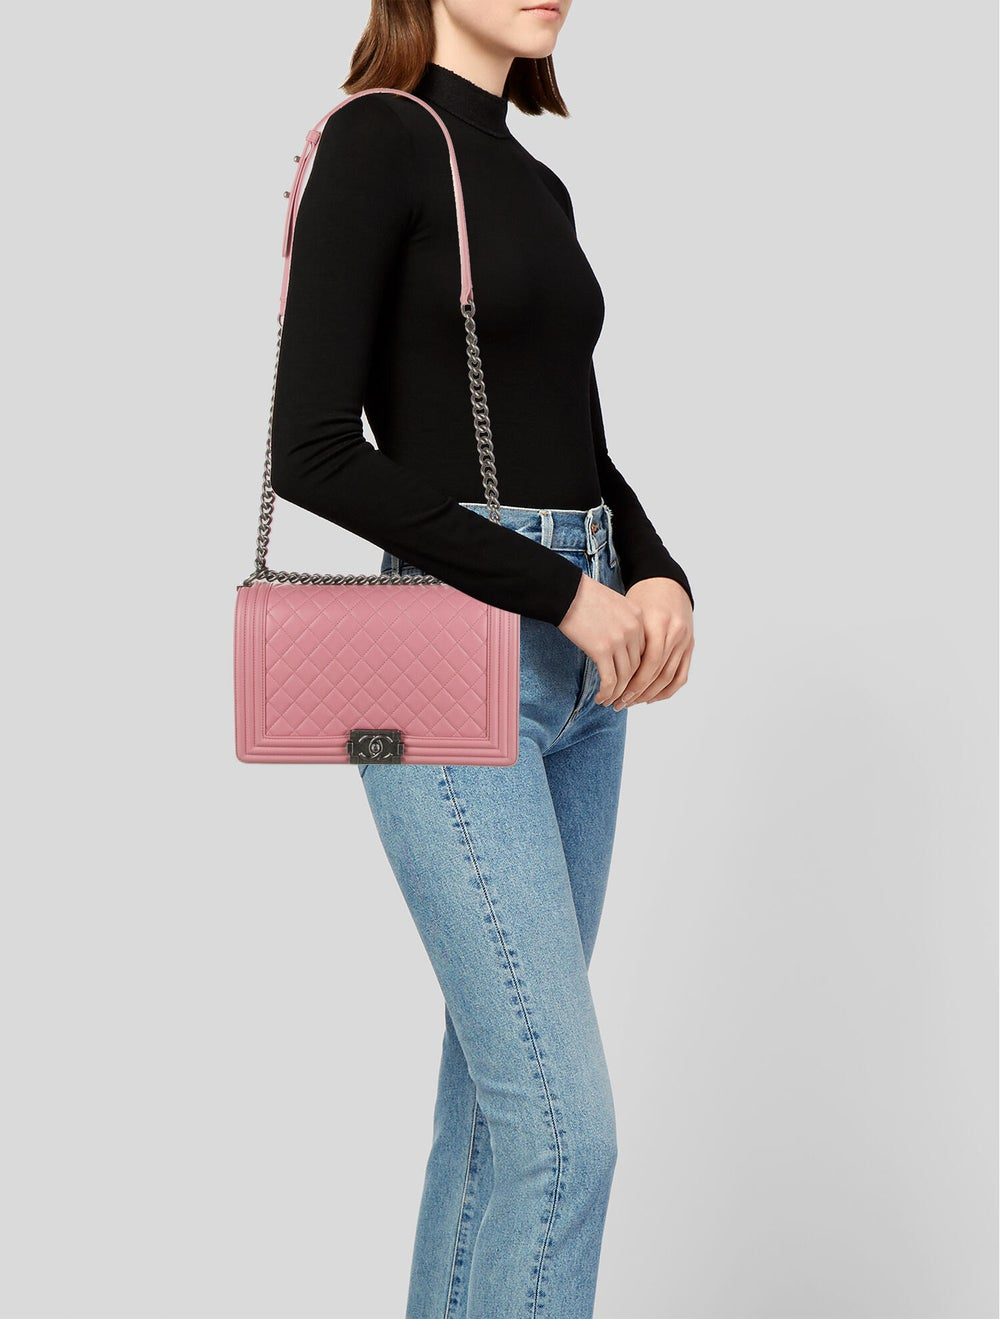 Chanel Large Quilted Boy Bag Pink - image 2